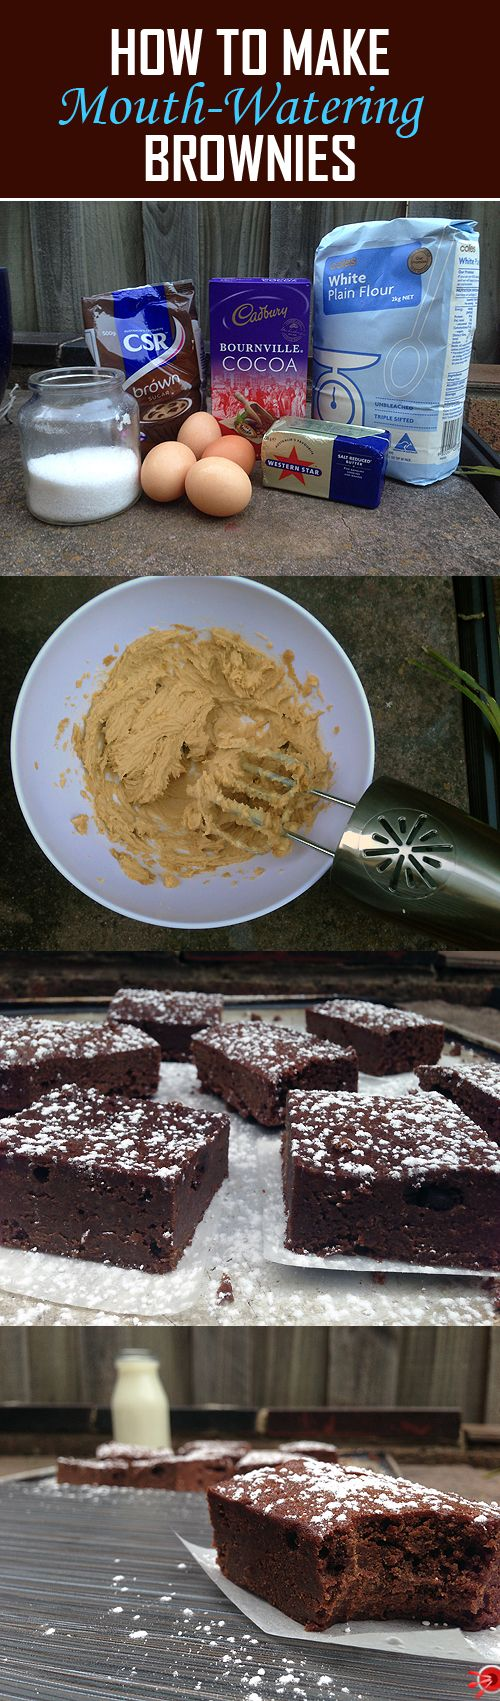 Follow our step-by-step guide on how to make your very own, delicious homemade chocolate brownies from scratch. These are simply to die for, believe me!